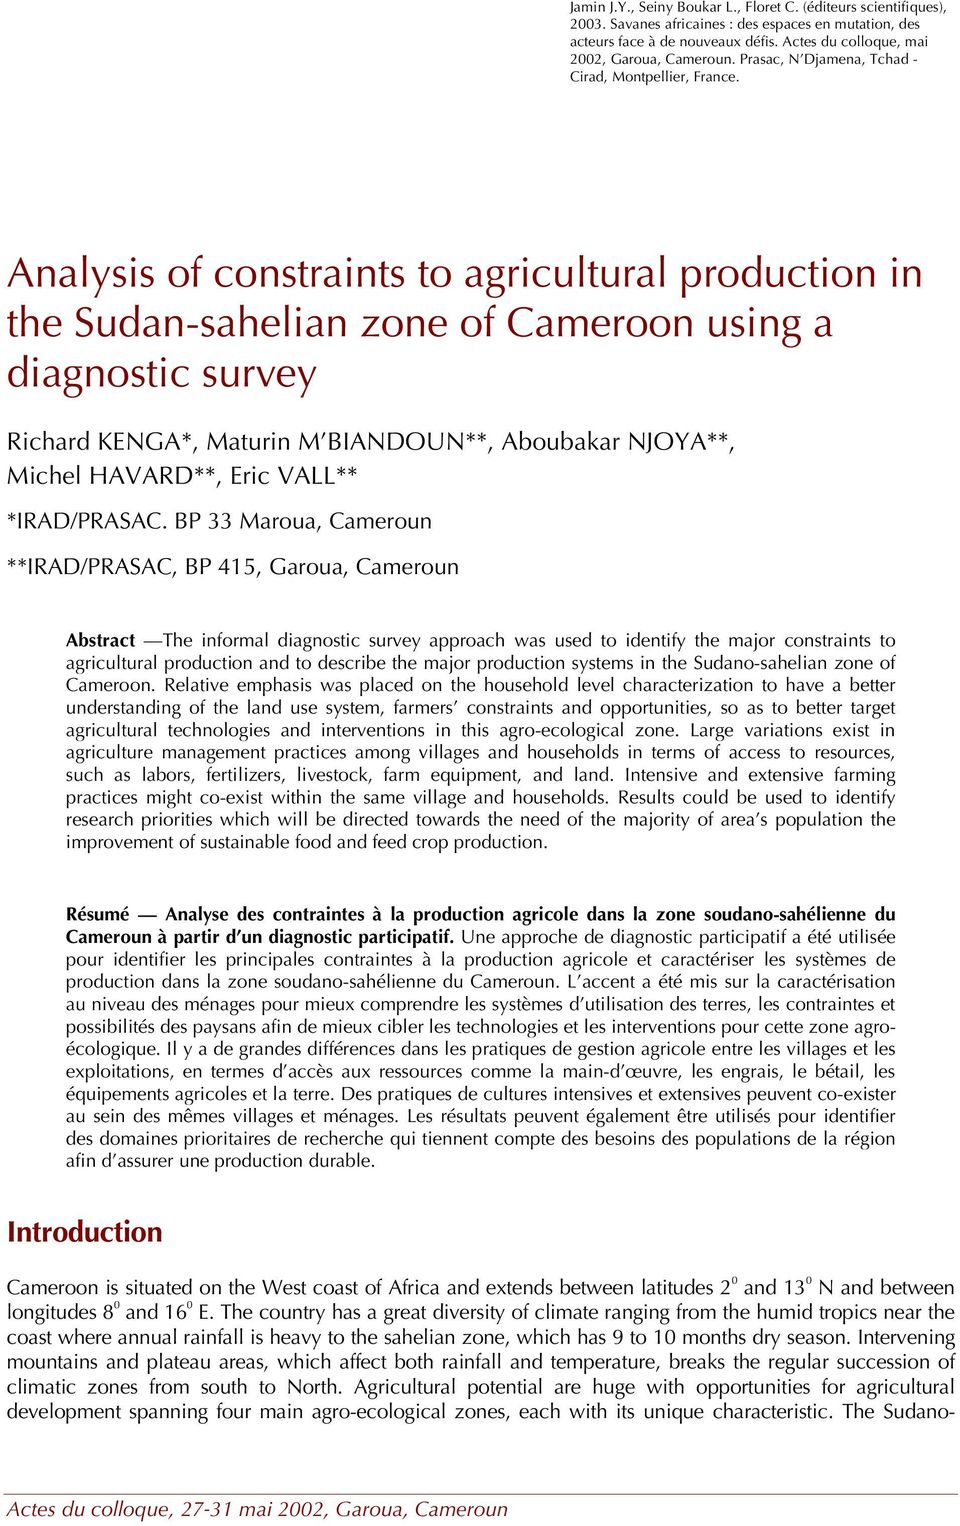 Analysis of constraints to agricultural production in the Sudan-sahelian zone of Cameroon using a diagnostic survey Richard KENGA*, Maturin M BIANDOUN**, Aboubakar NJOYA**, Michel HAVARD**, Eric